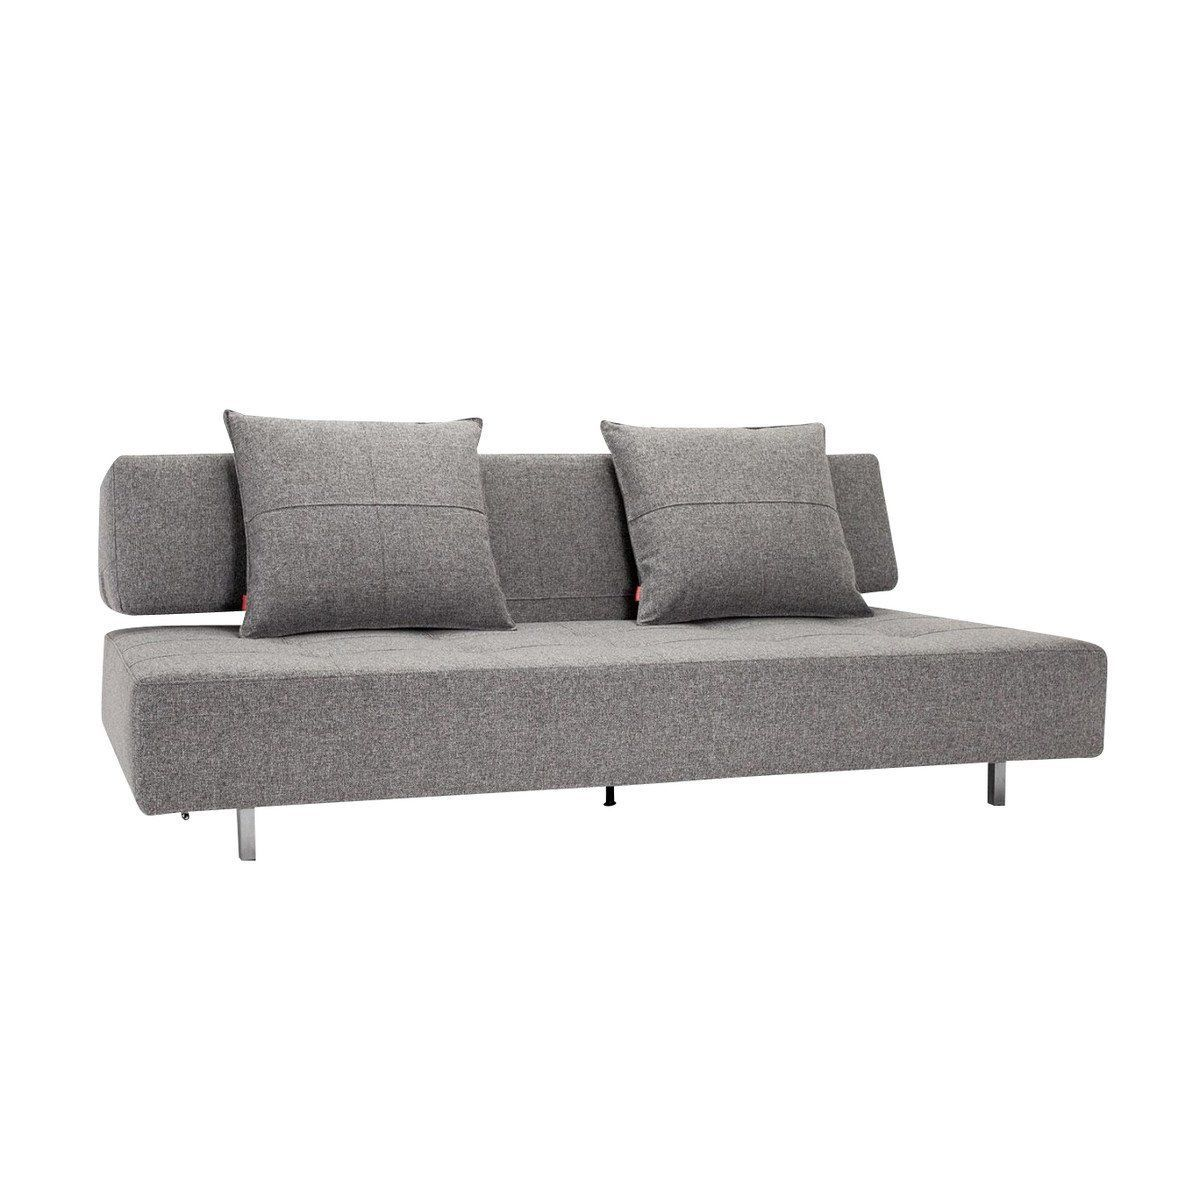 Long horn excess sofa bed innovation for Innovation sofa cover